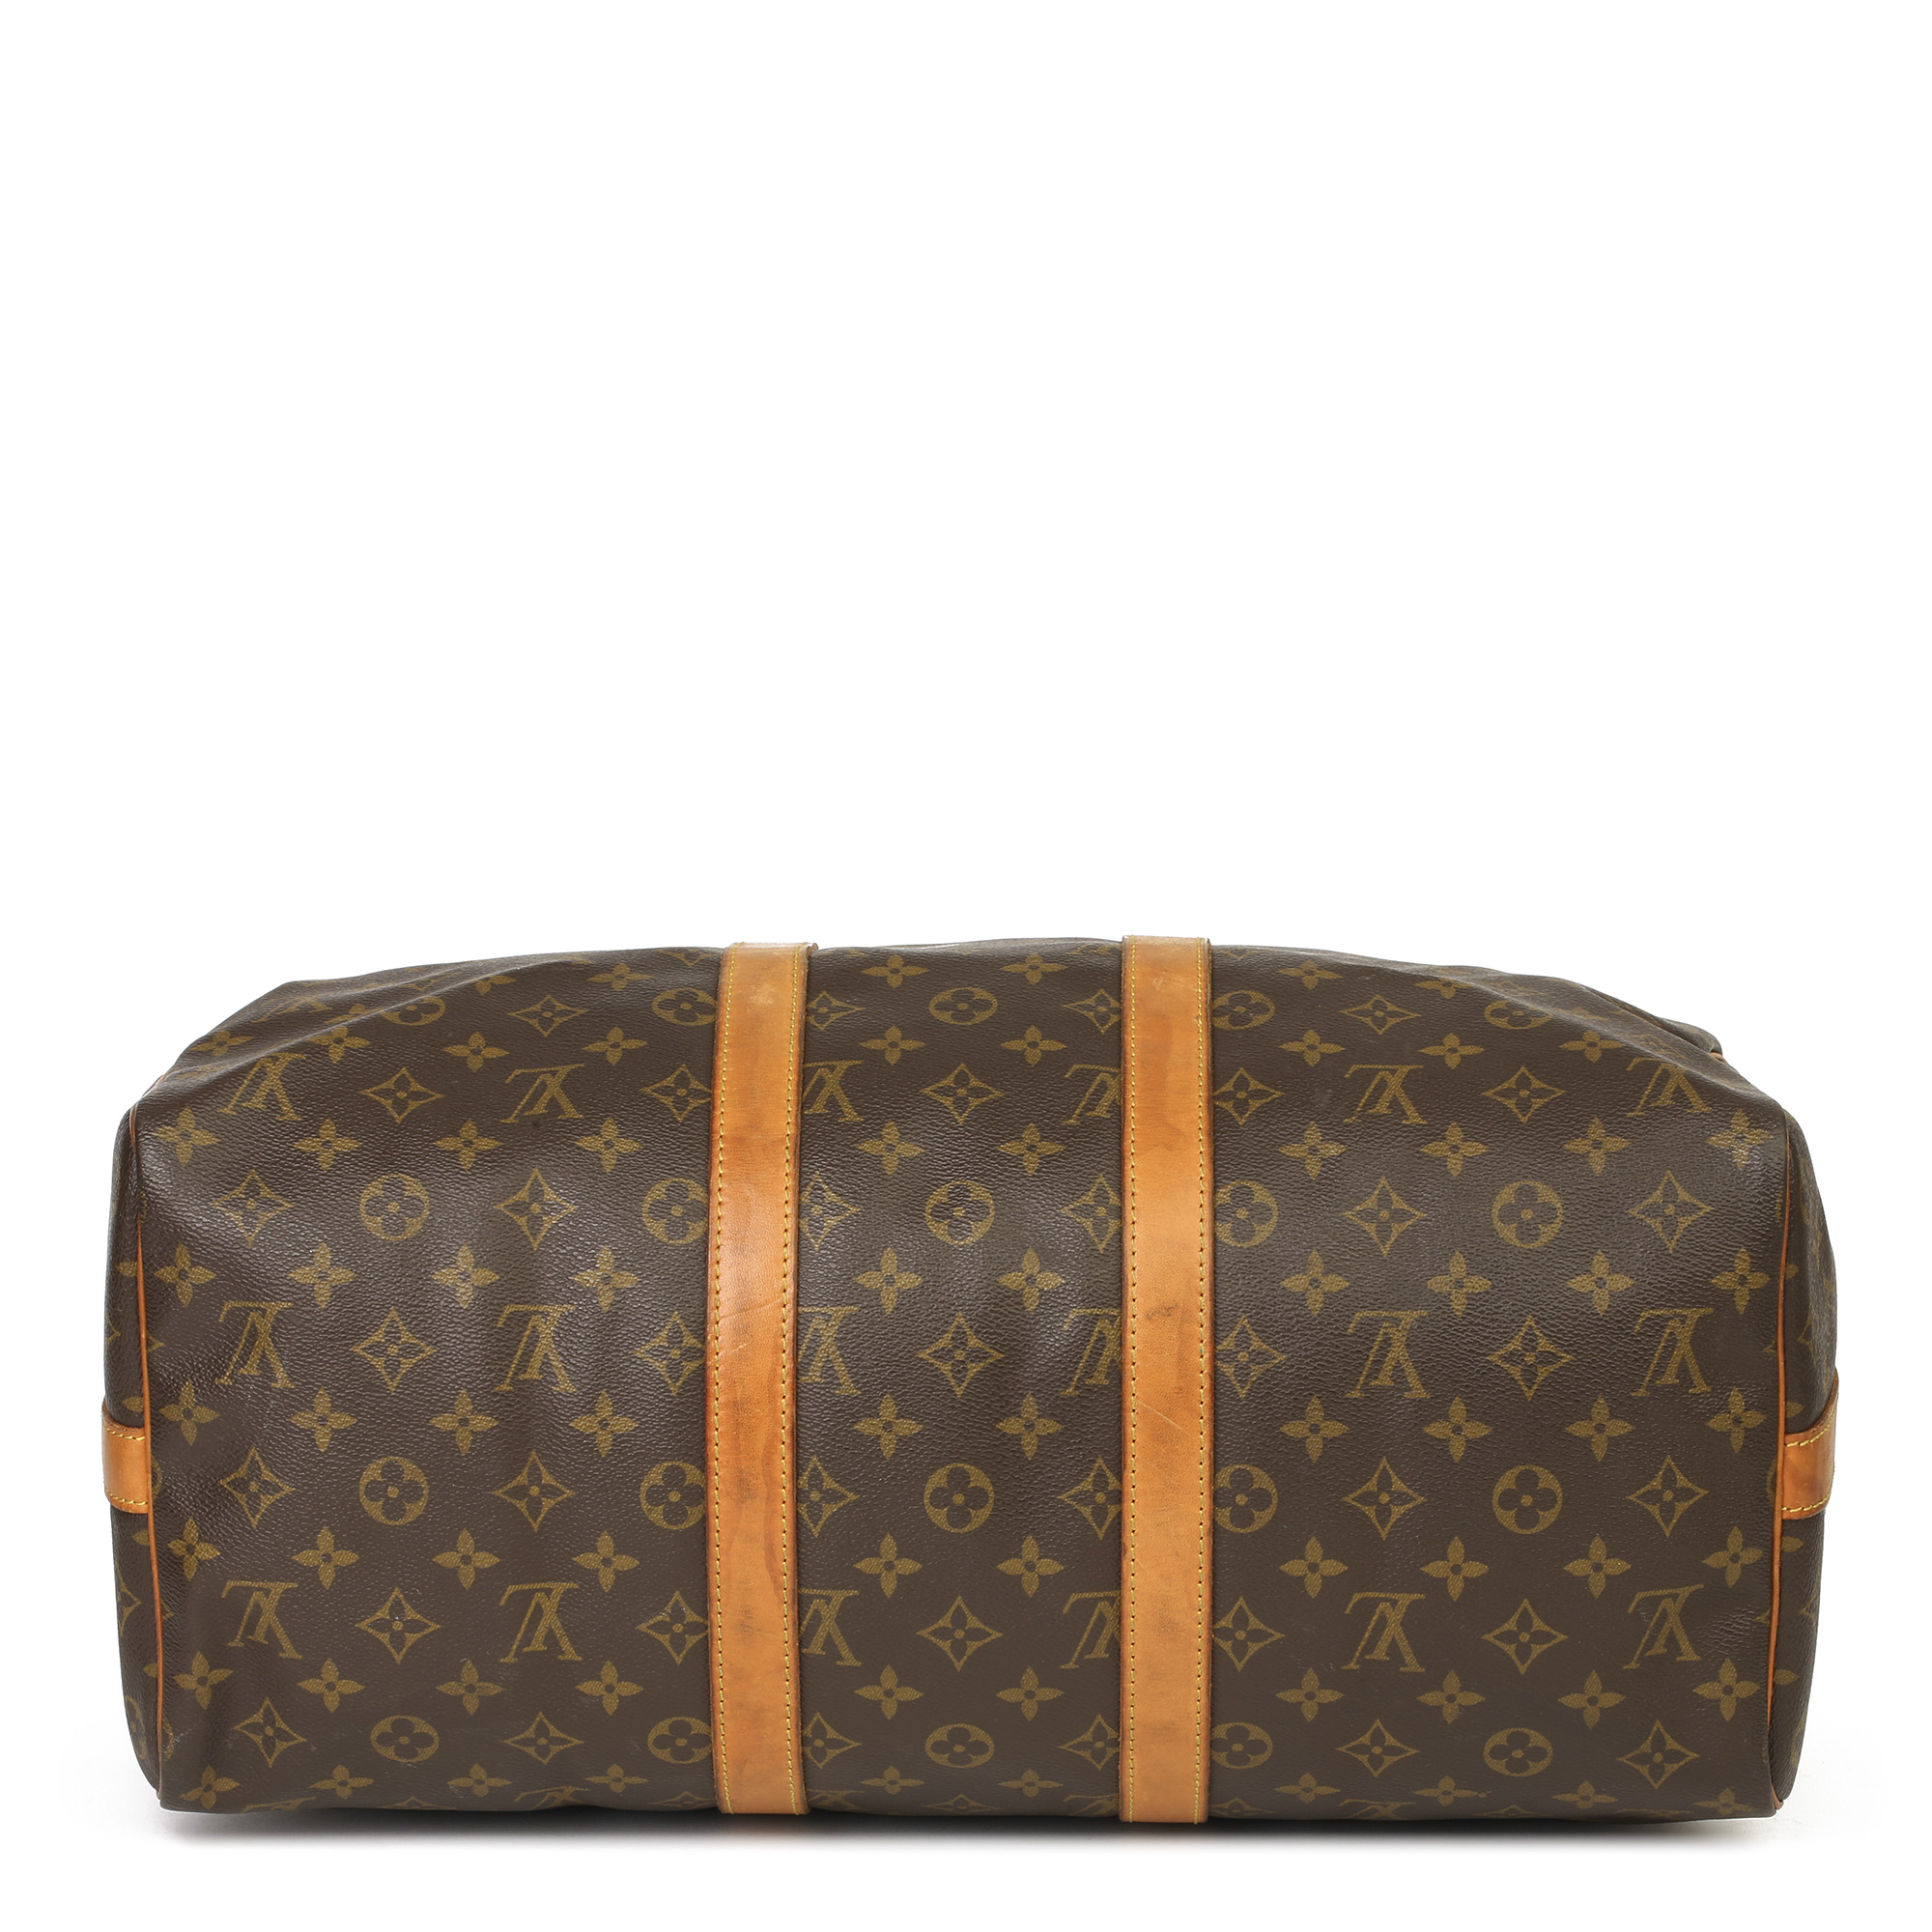 Louis Vuitton Brown Monogram Coated Canvas & Vachetta Leather Vintage Keepall 45 Bandoulire - Image 10 of 13